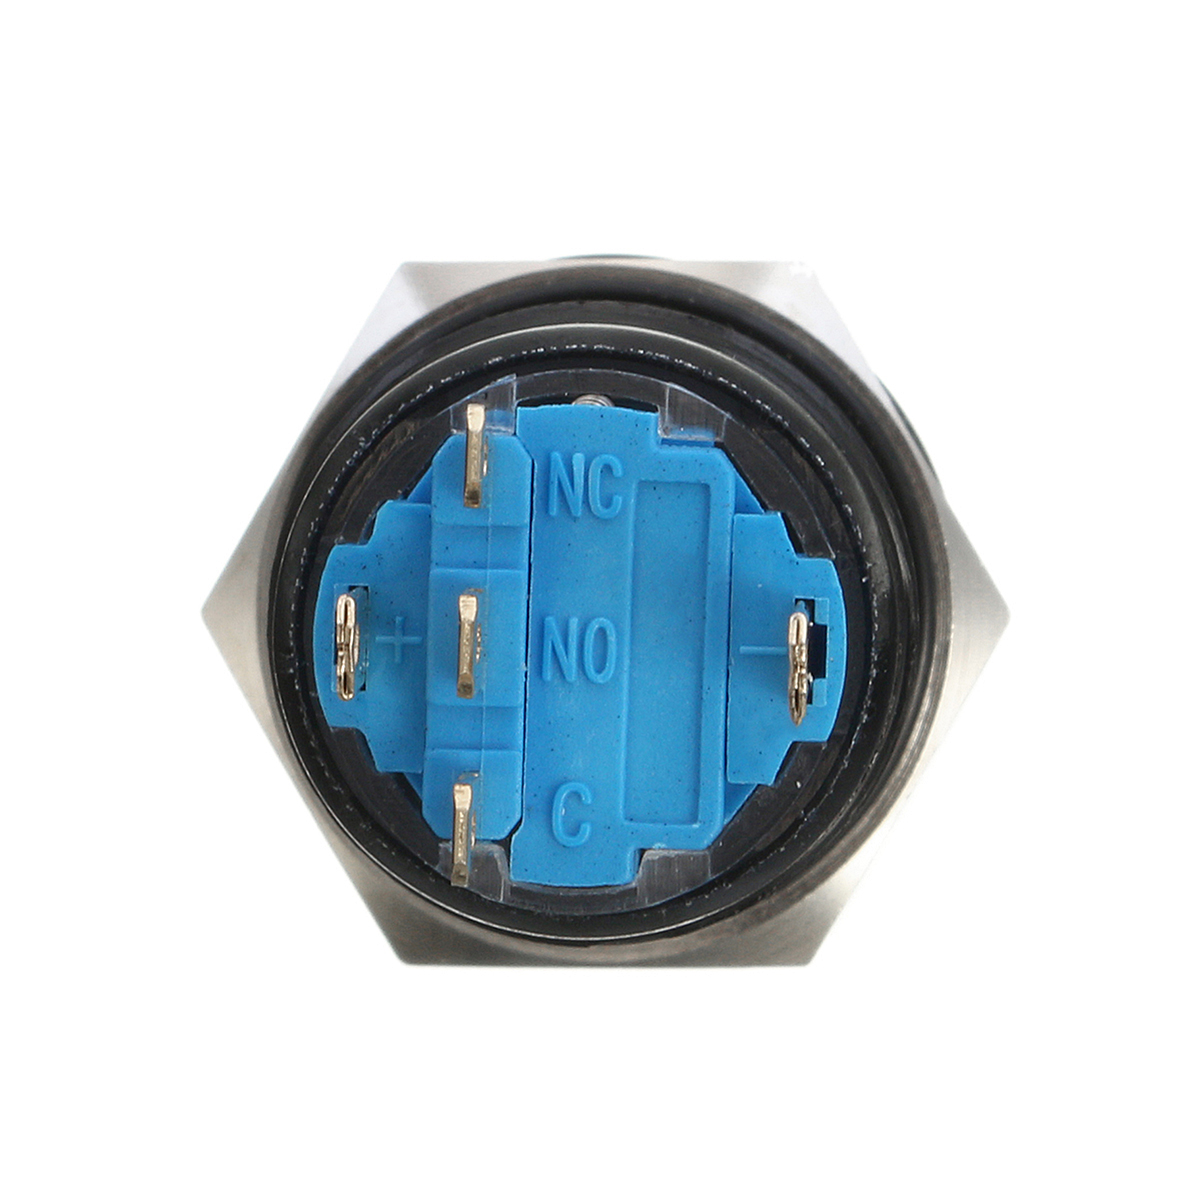 19mm 12V 5 Pin Led Light Metal Push Button Momentary Switch